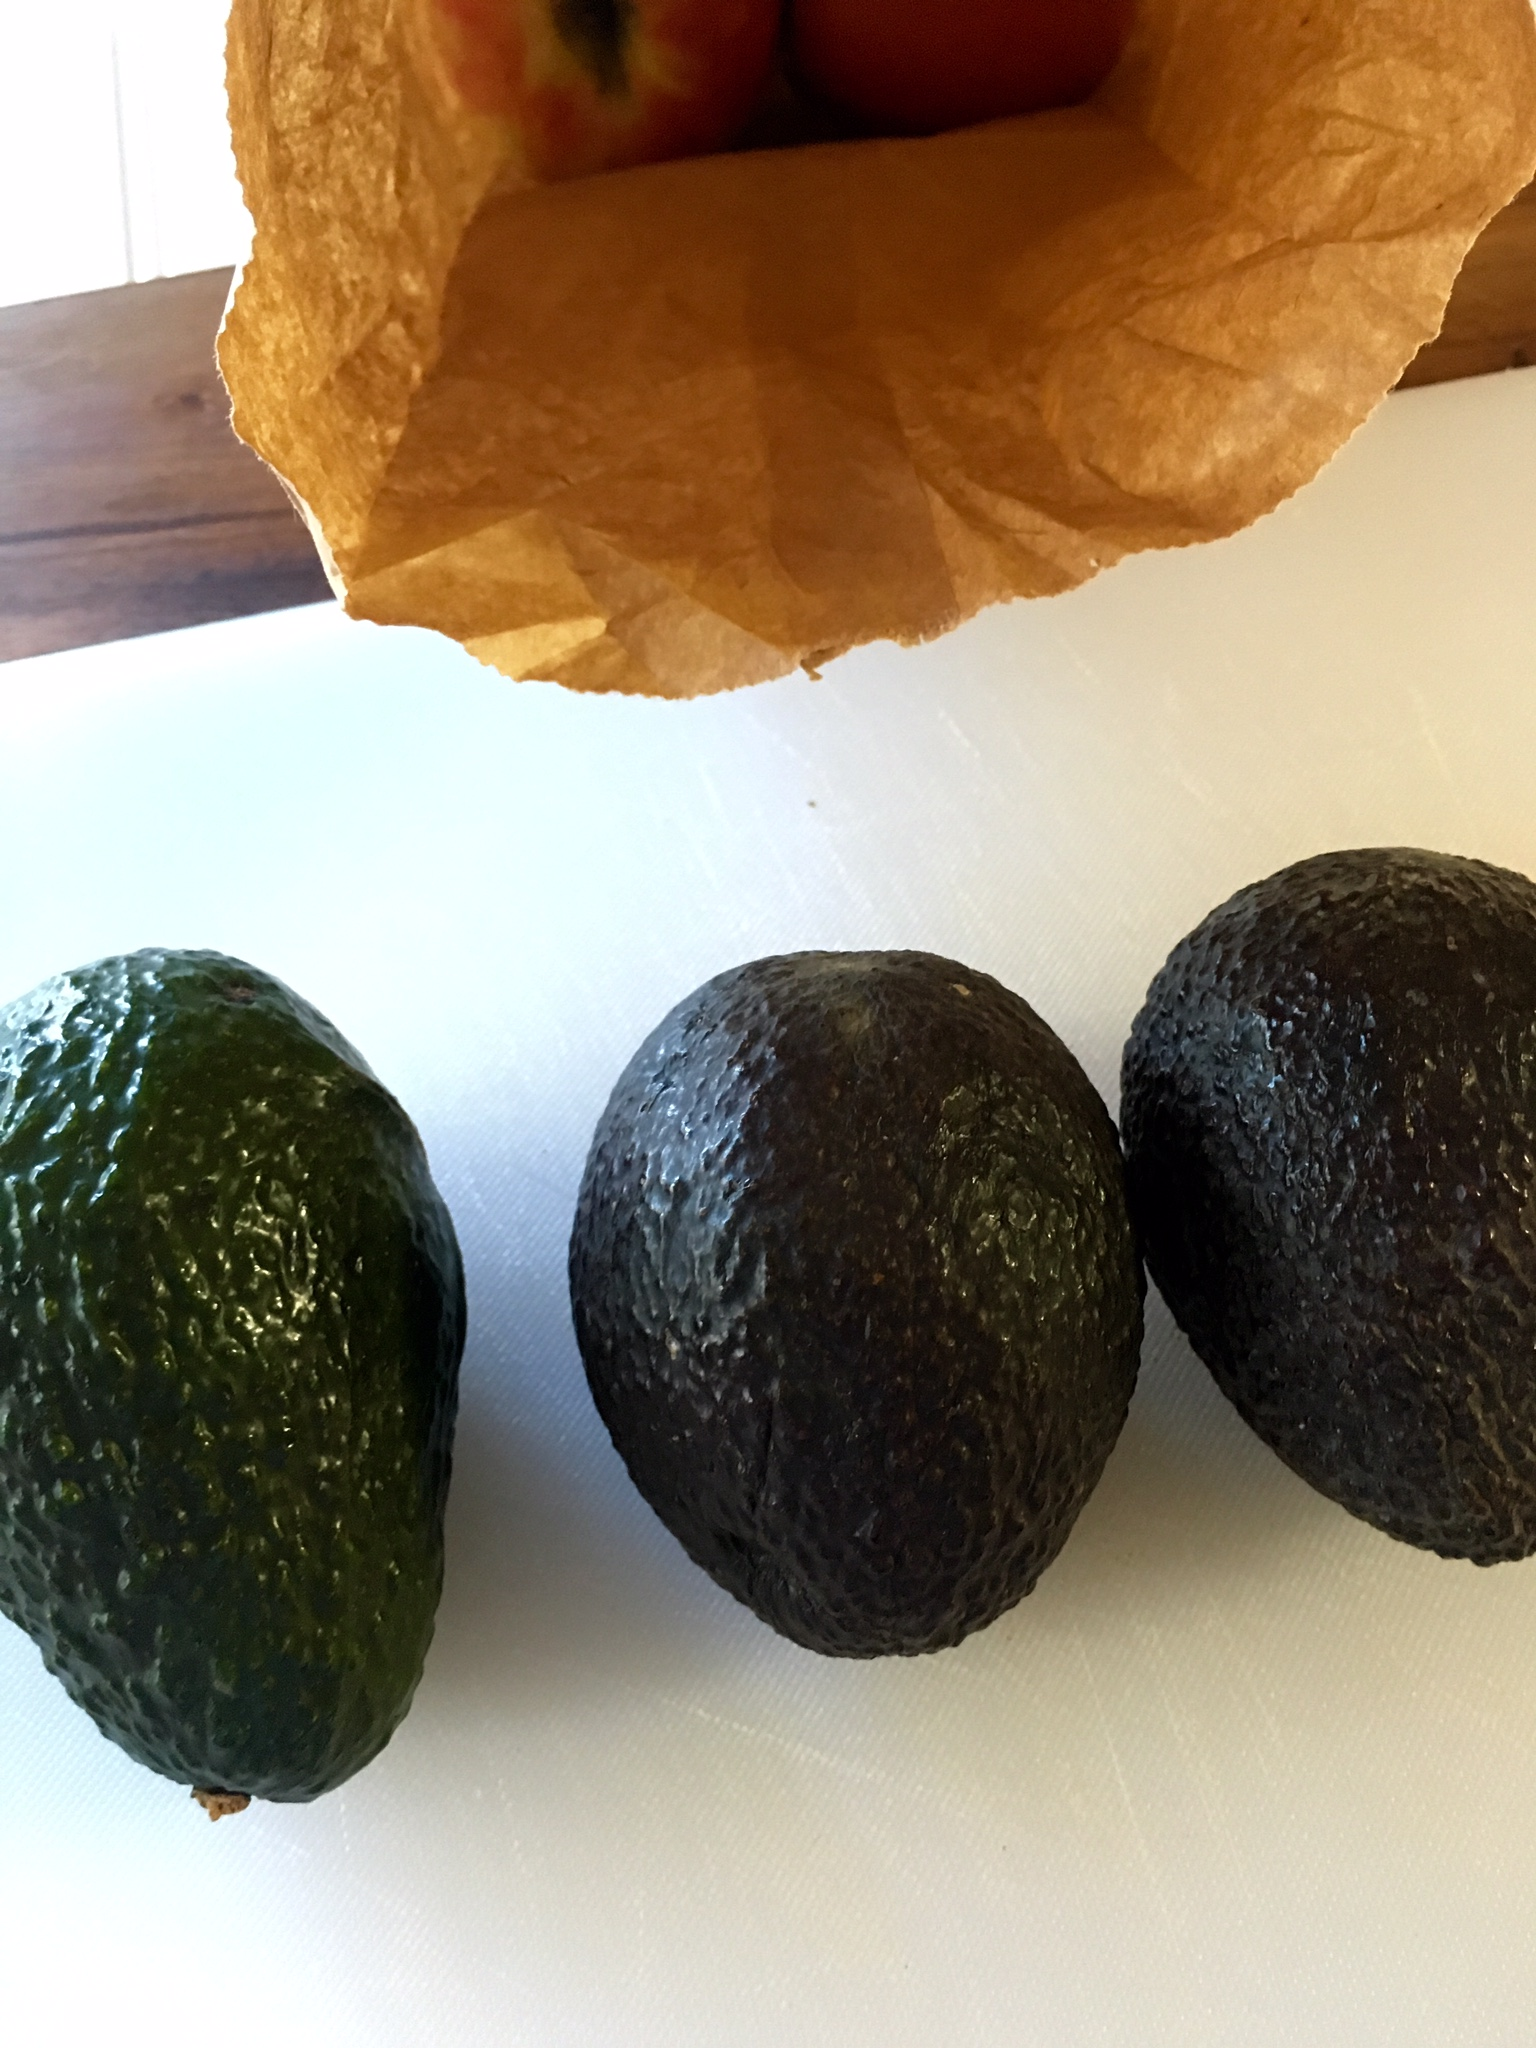 Step by Step Use a Bag to Ripen Avocados for Guacamole